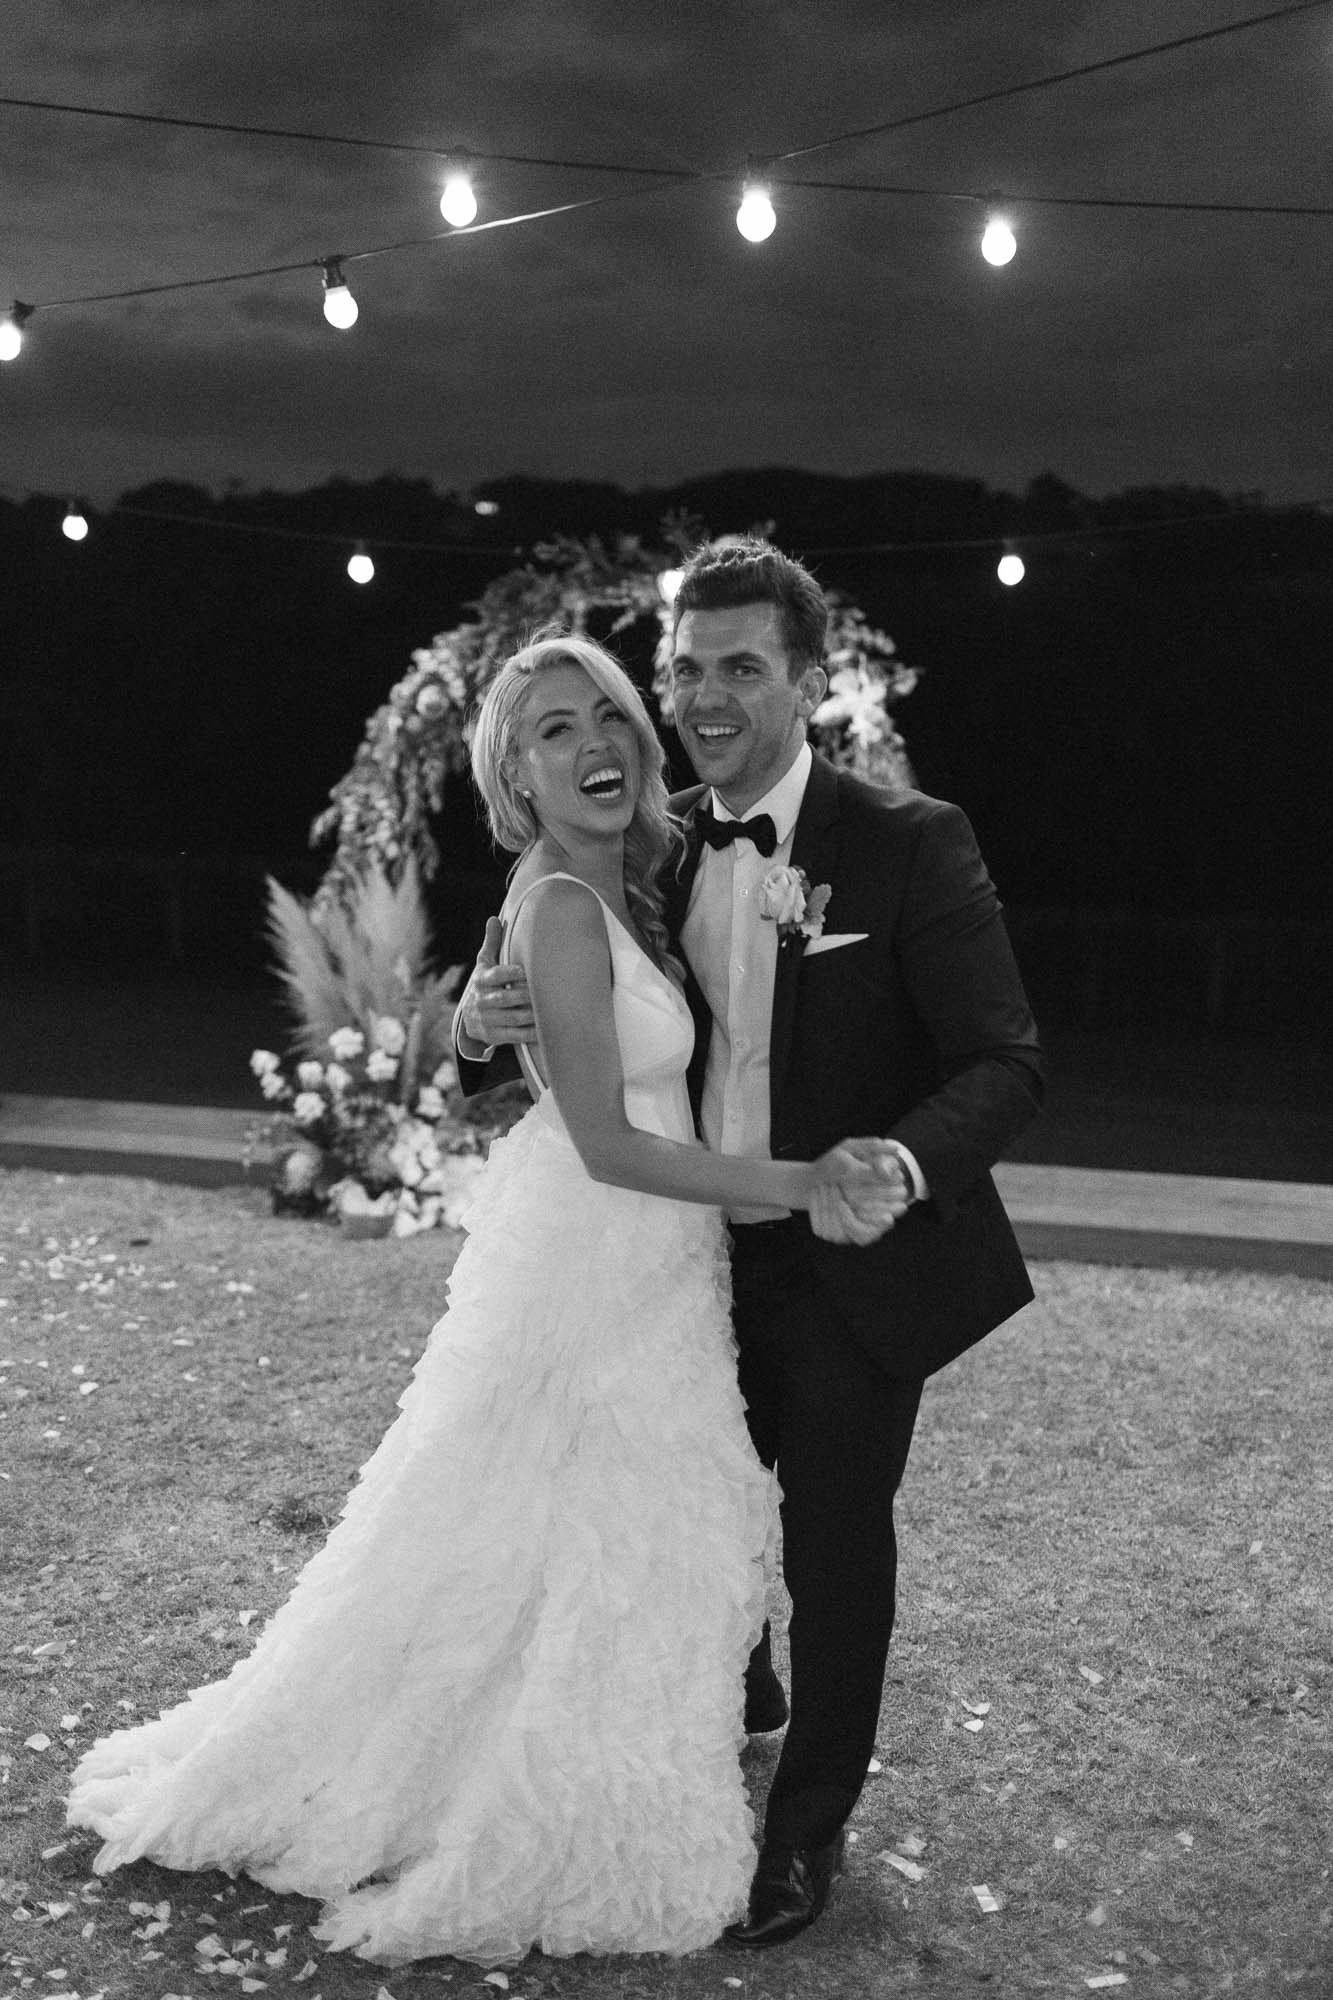 get inspired - looking for some wedding inspo to brighten your day? check out my really good portfolio.